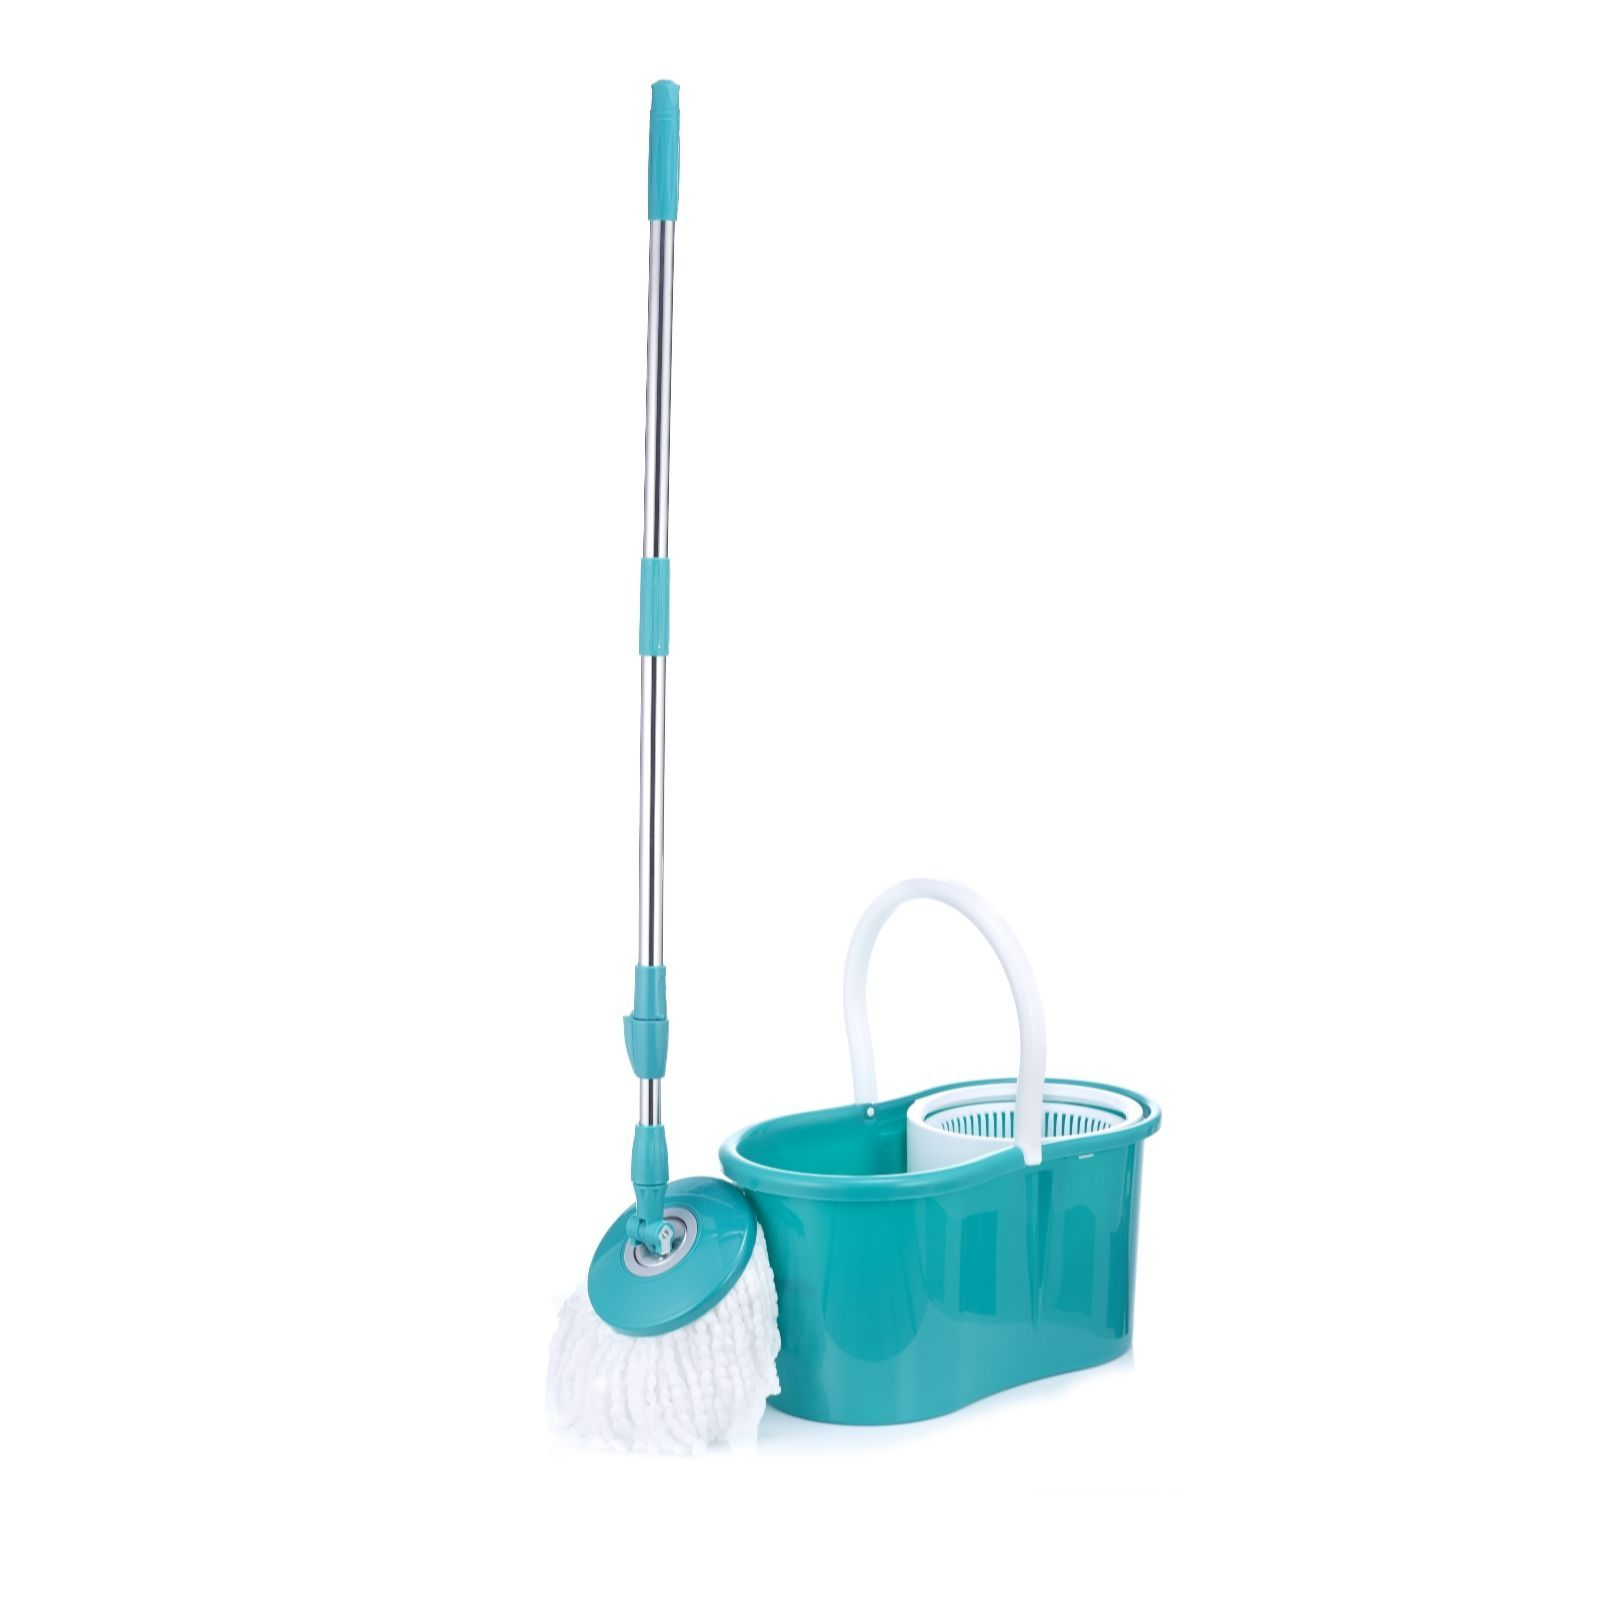 805615 - S2O Spin Mop with Additional Head QVC Price: £22.50 + P&P ...